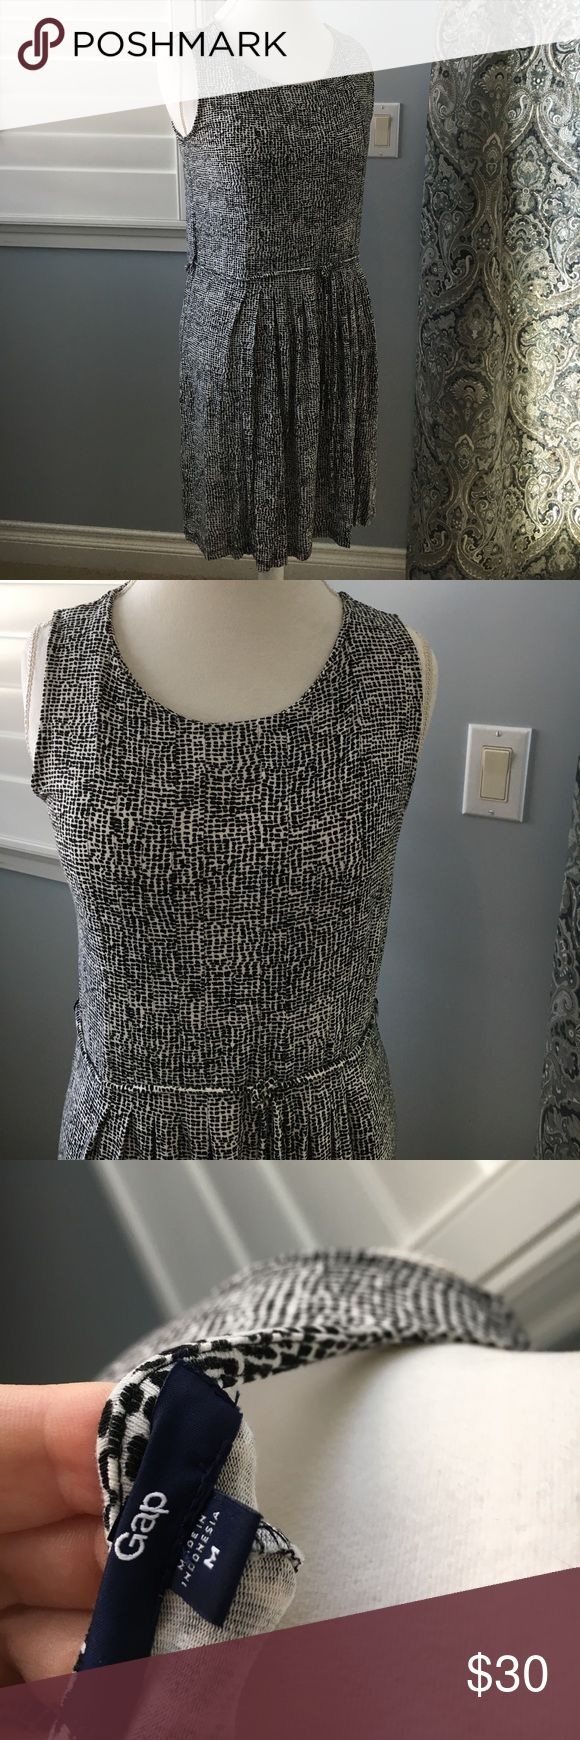 Jersey knit Gap dress Super cute black and white jersey knit dress from the Gap. This dress is not lined but is not see through. This is a comfy and cute dress to throw on for any reason including the beach :) GAP Dresses